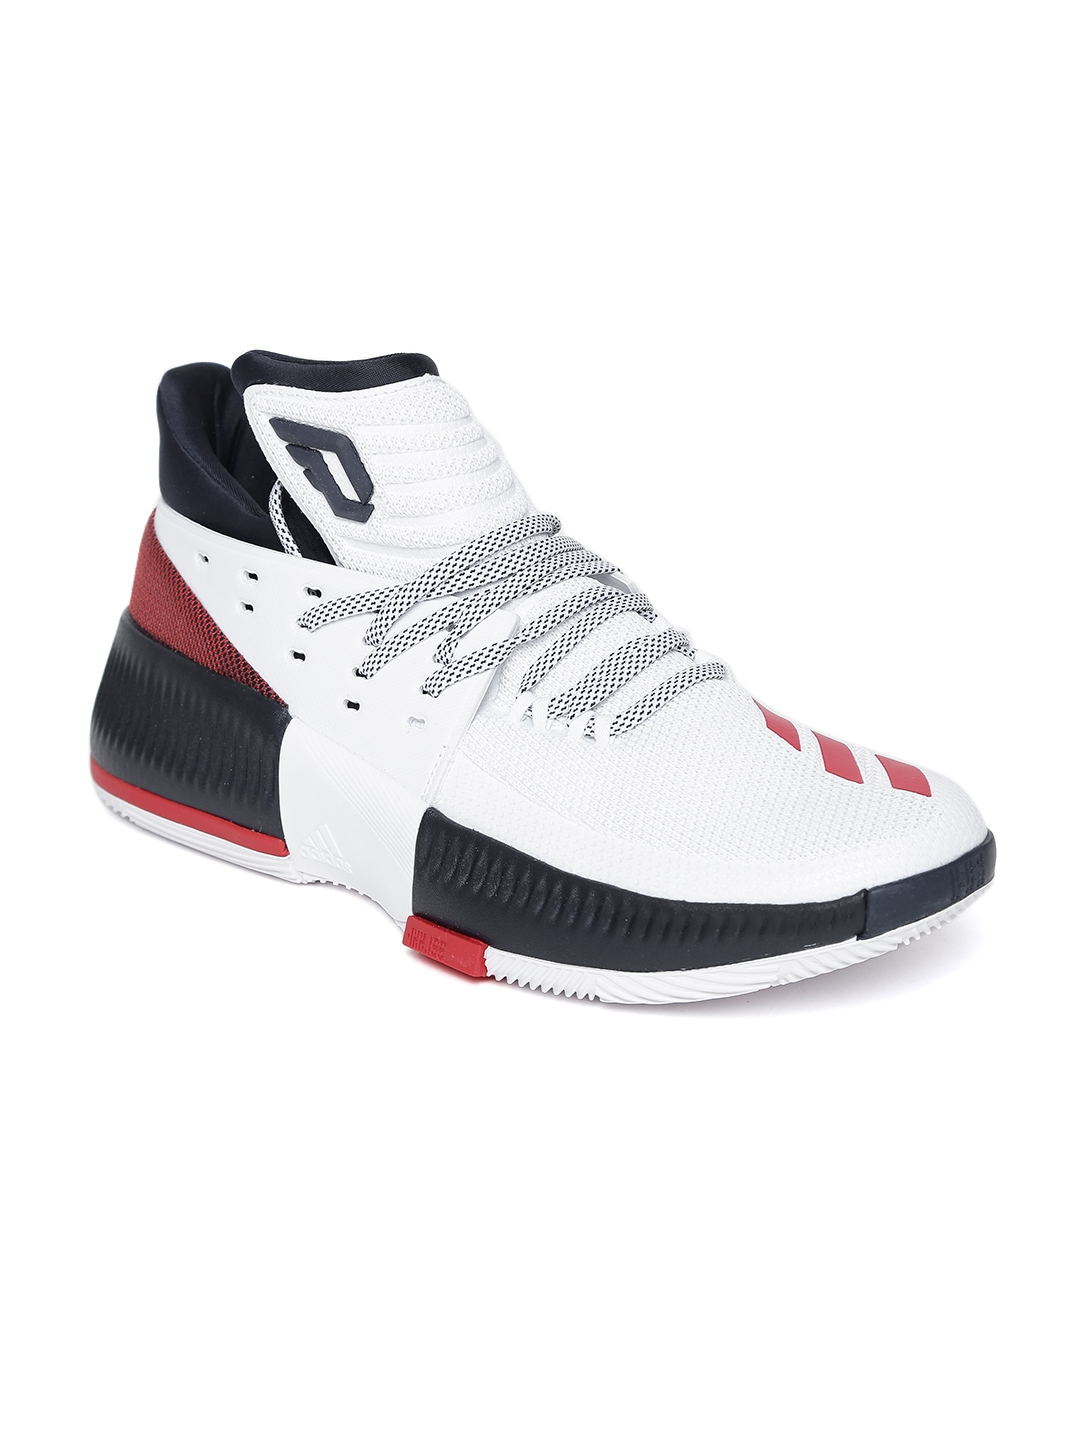 innovative design fbd42 8aeef ADIDAS Men White Dame 3 Mid-Top Basketball Shoes